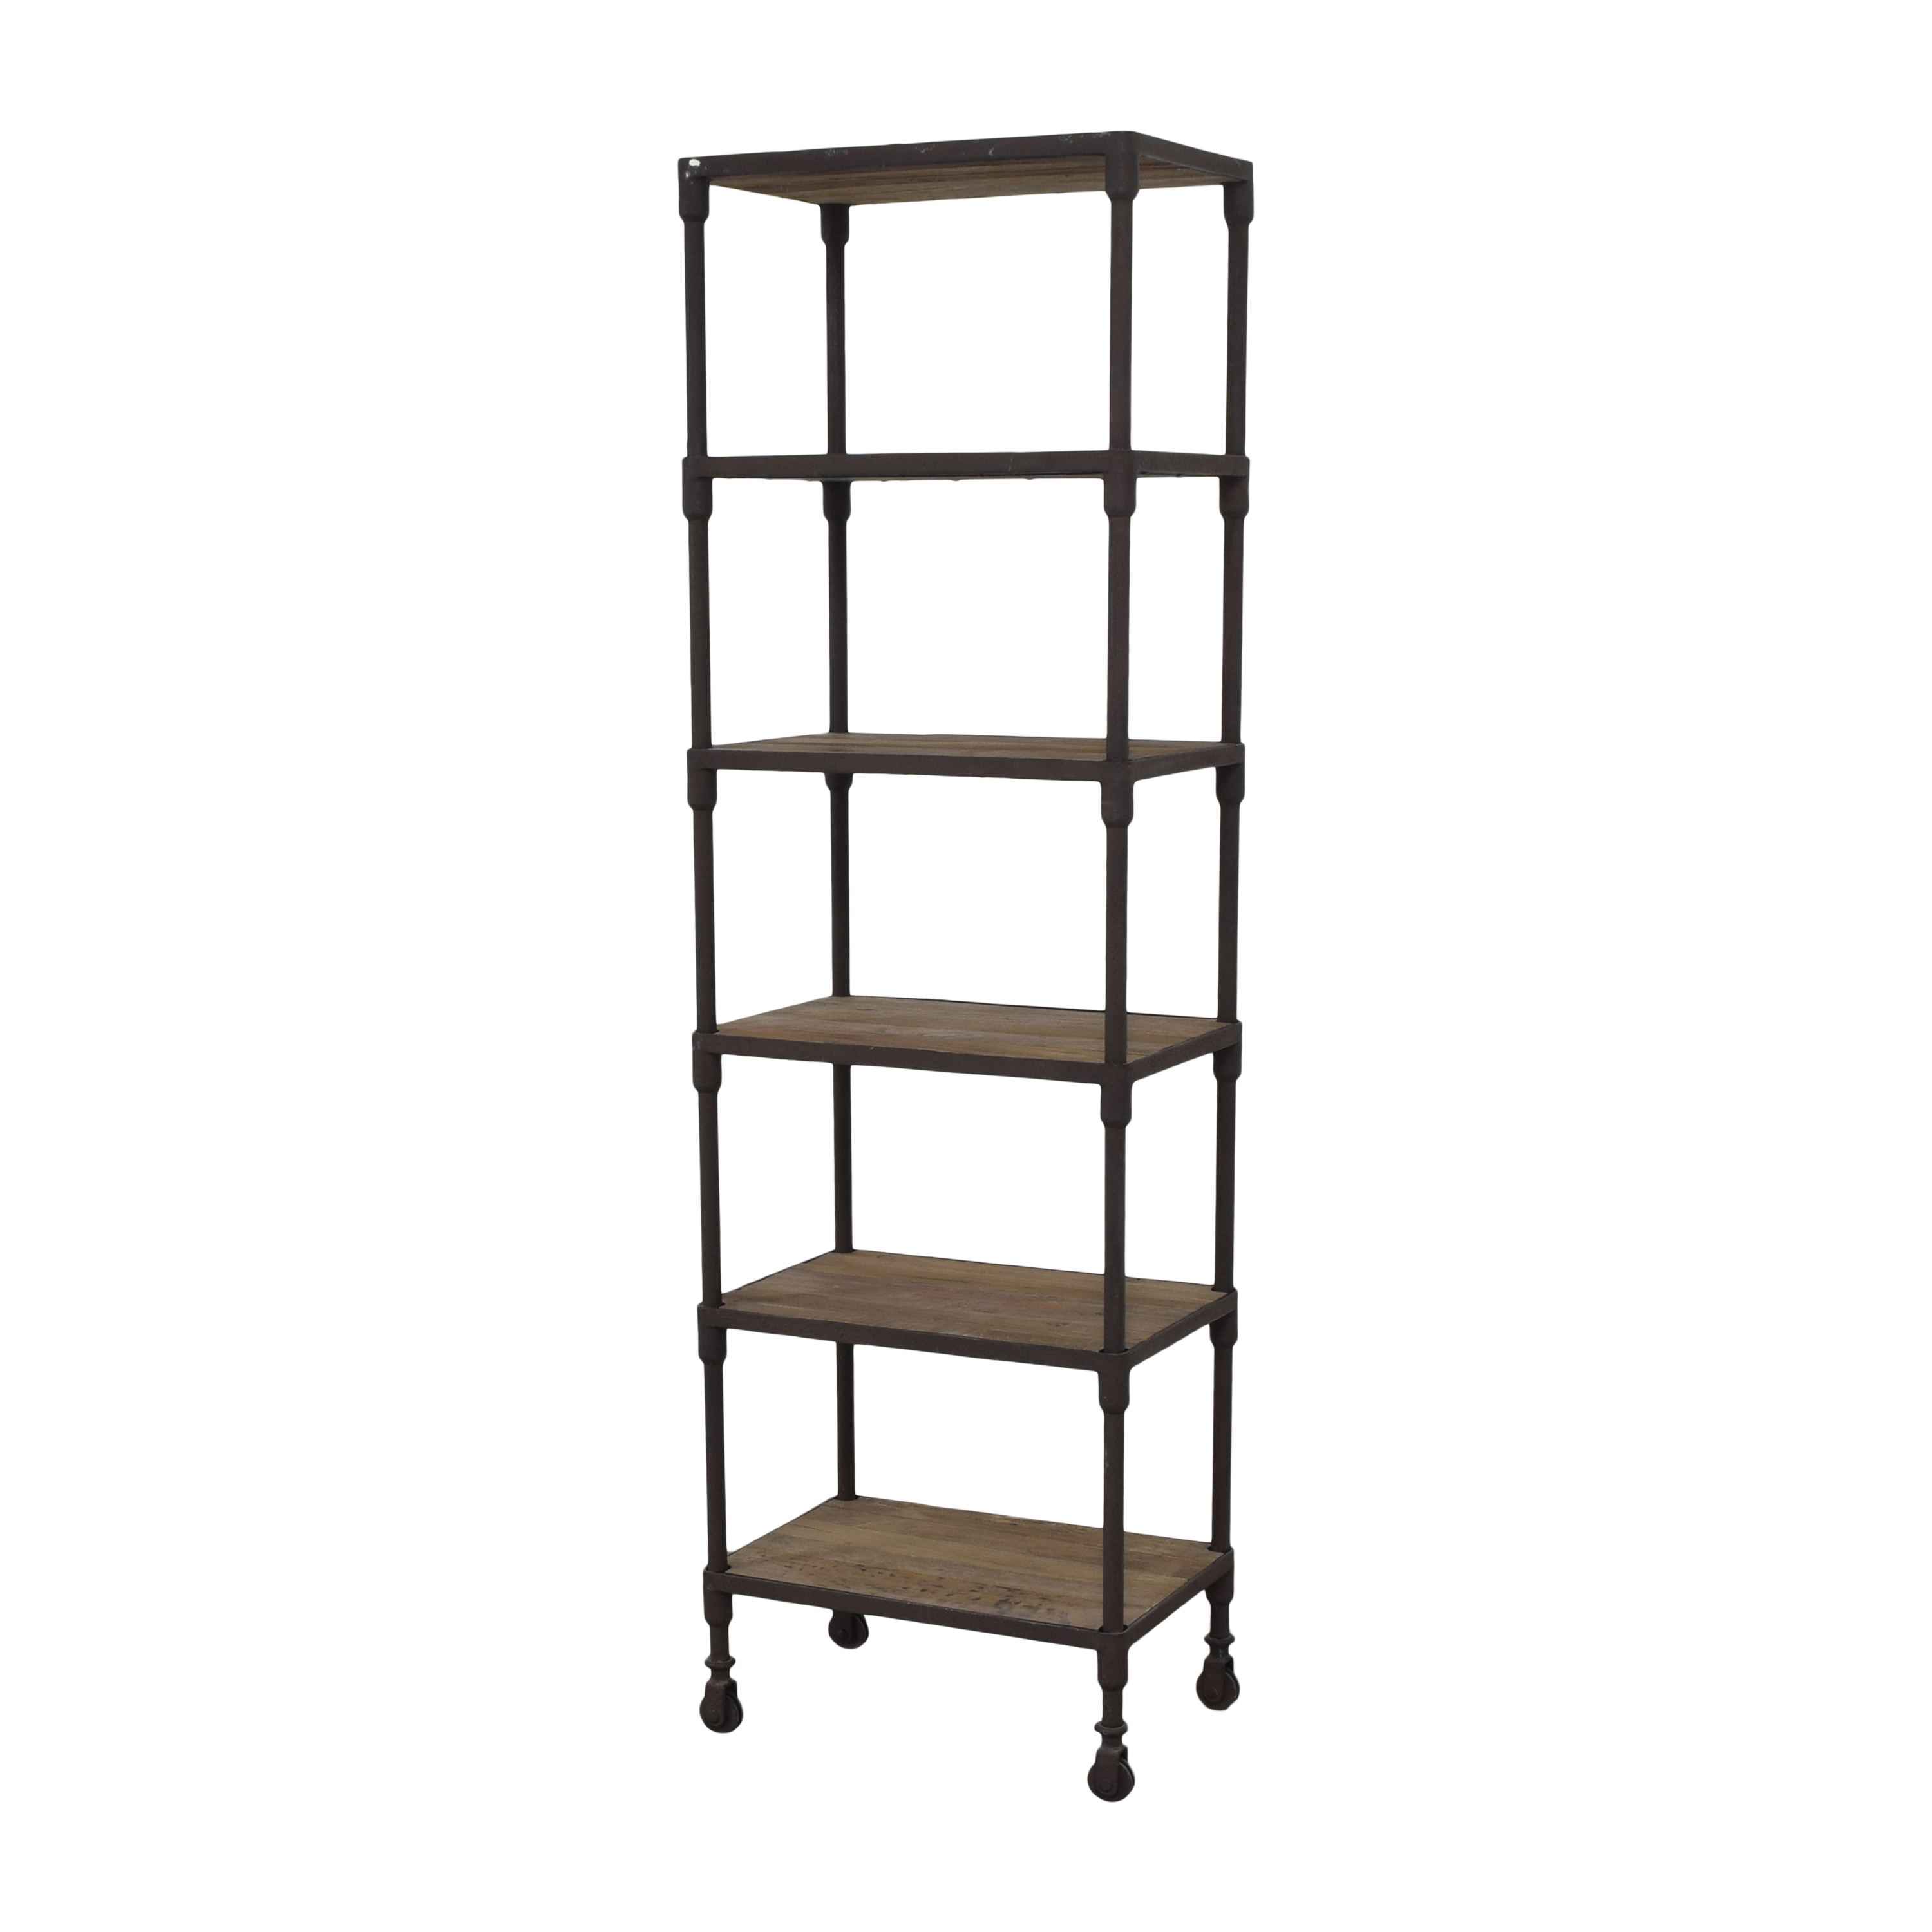 Restoration Hardware Restoration Hardware Dutch Industrial Tower on sale